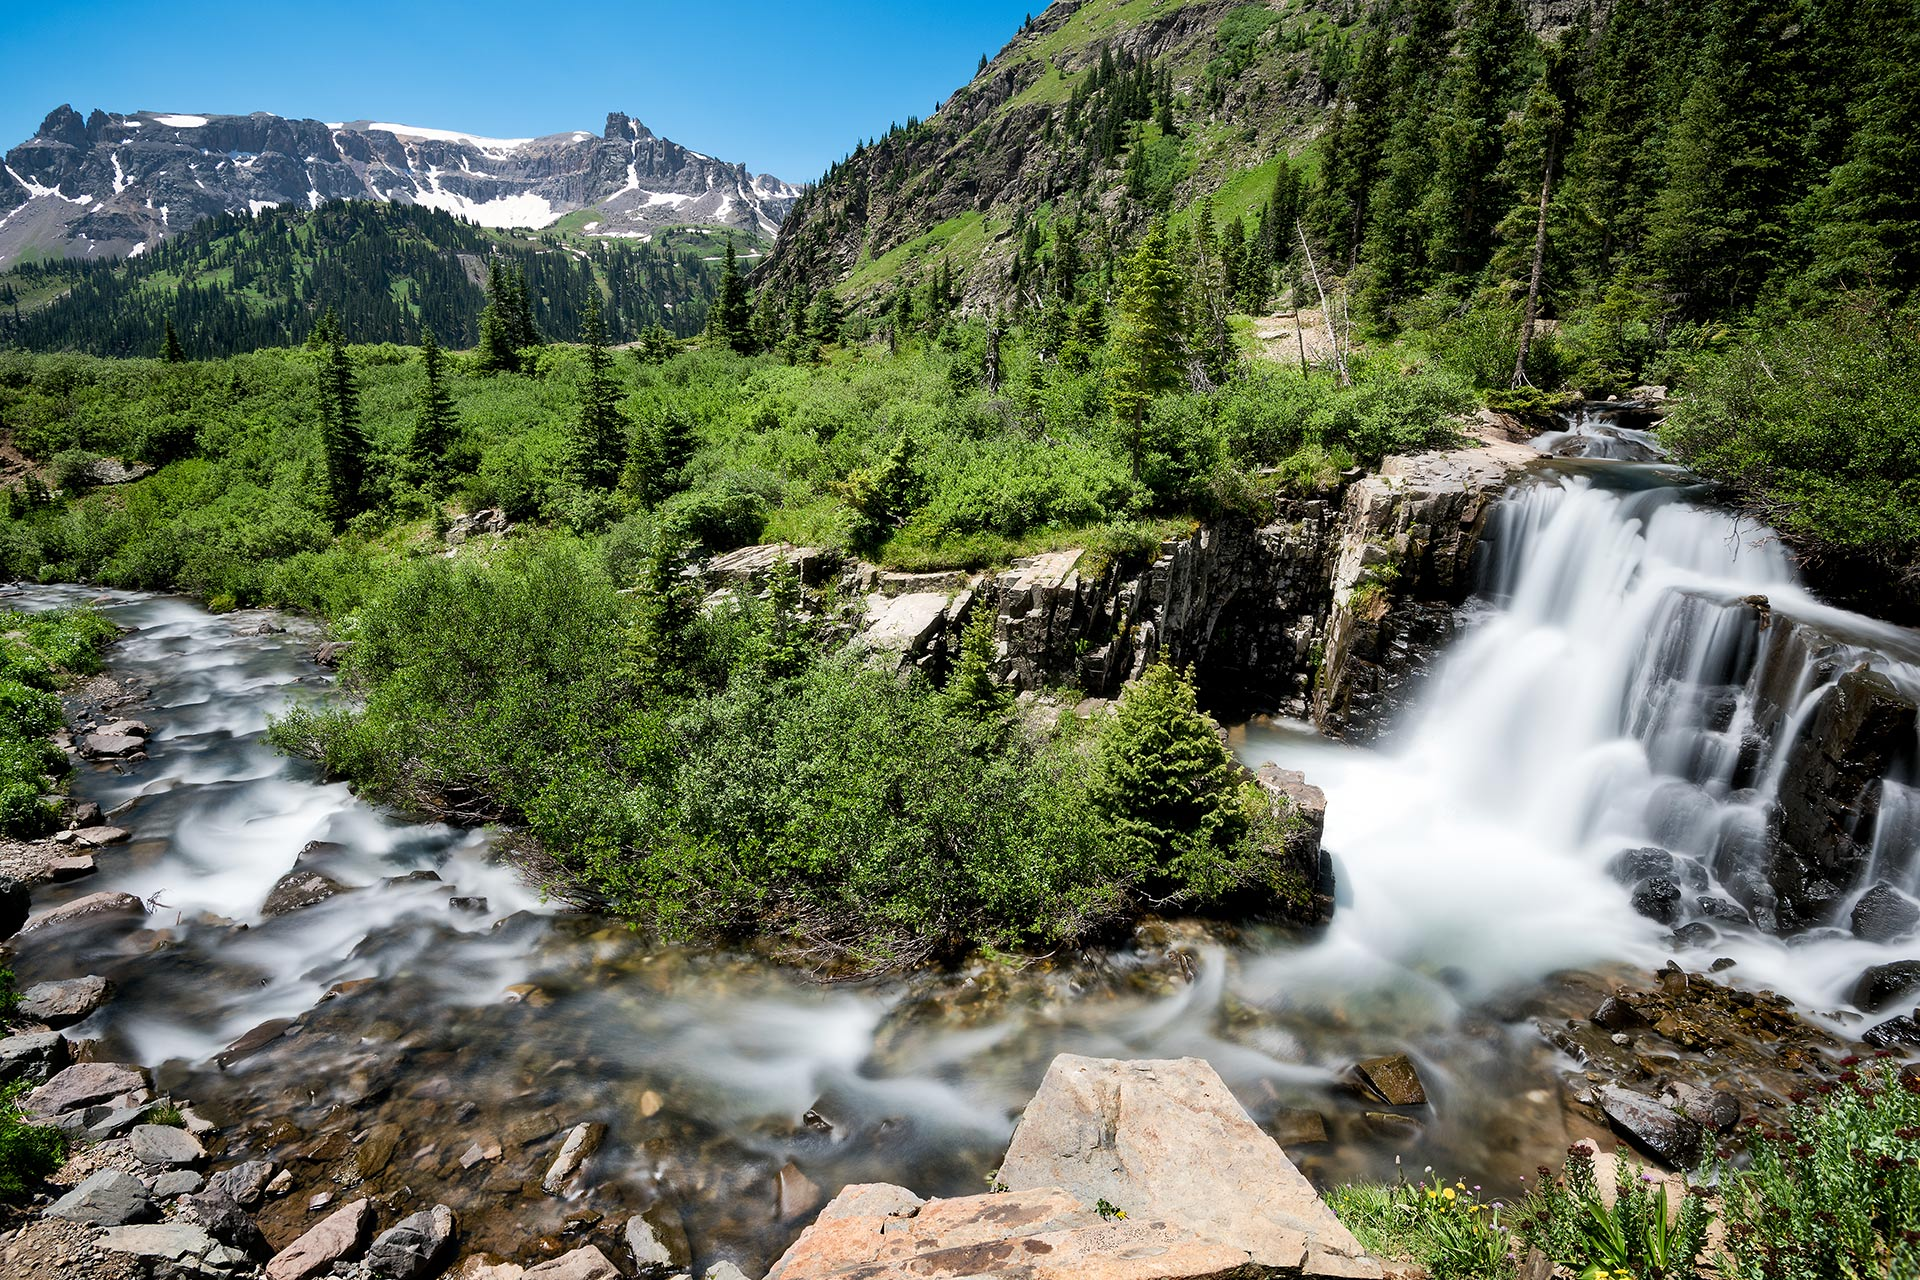 Waterfall at Yankee Boy Basin, near Ouray, Colorado.